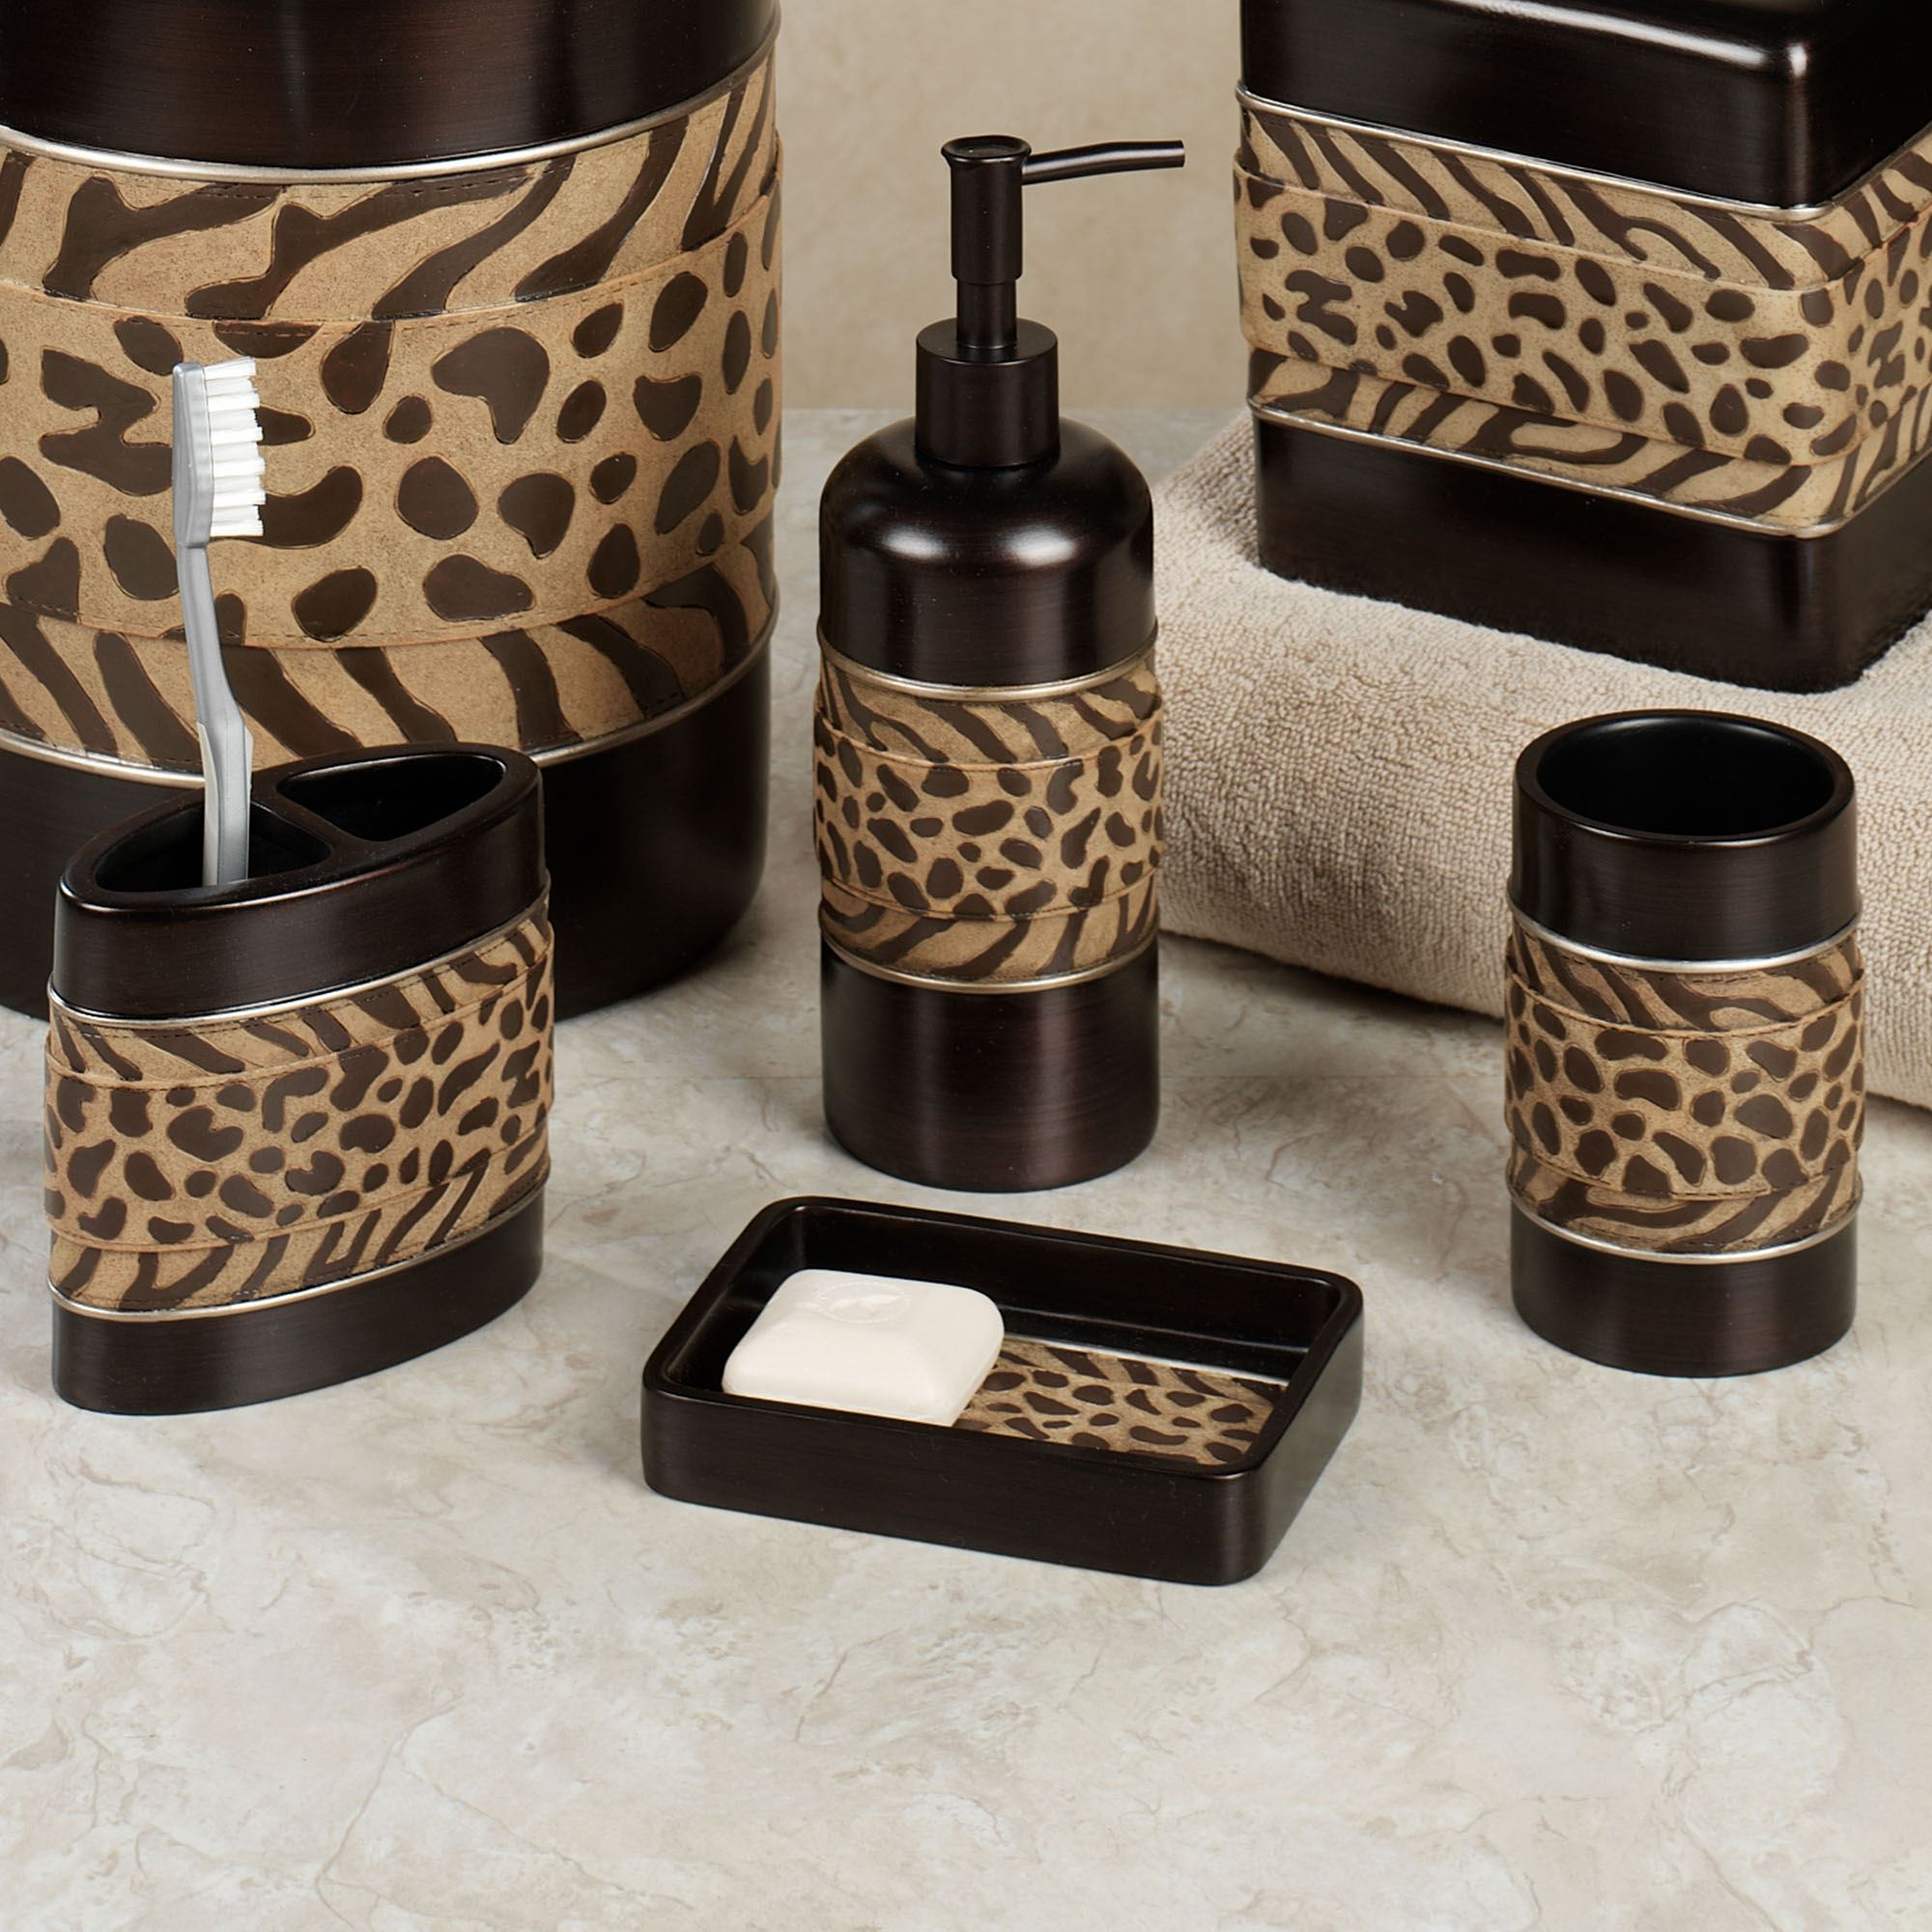 Cheshire Animal Print Bath Accessories. Cheshire Lotion Soap Dispenser Brown. Touch to zoom